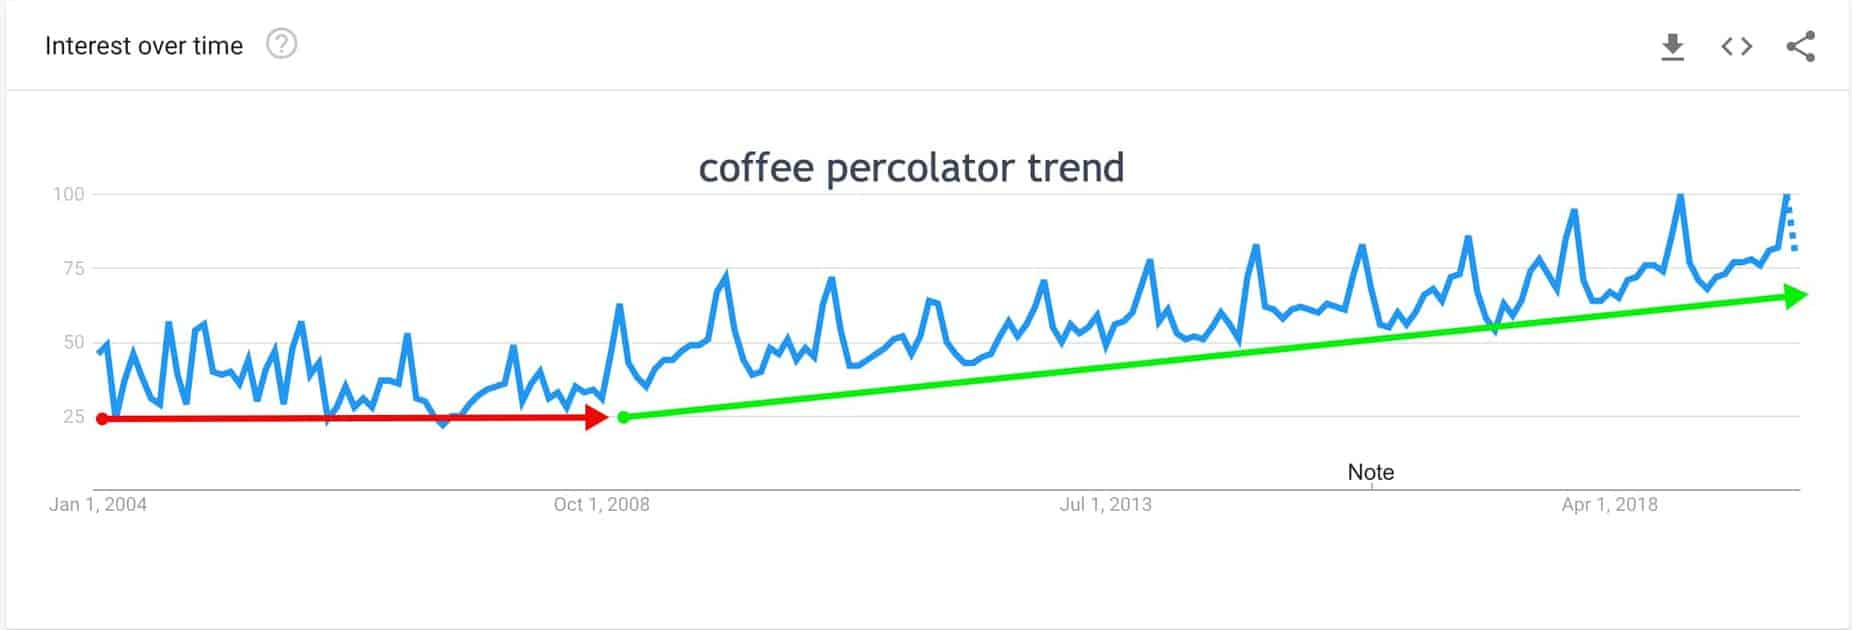 google trend for coffee percolator